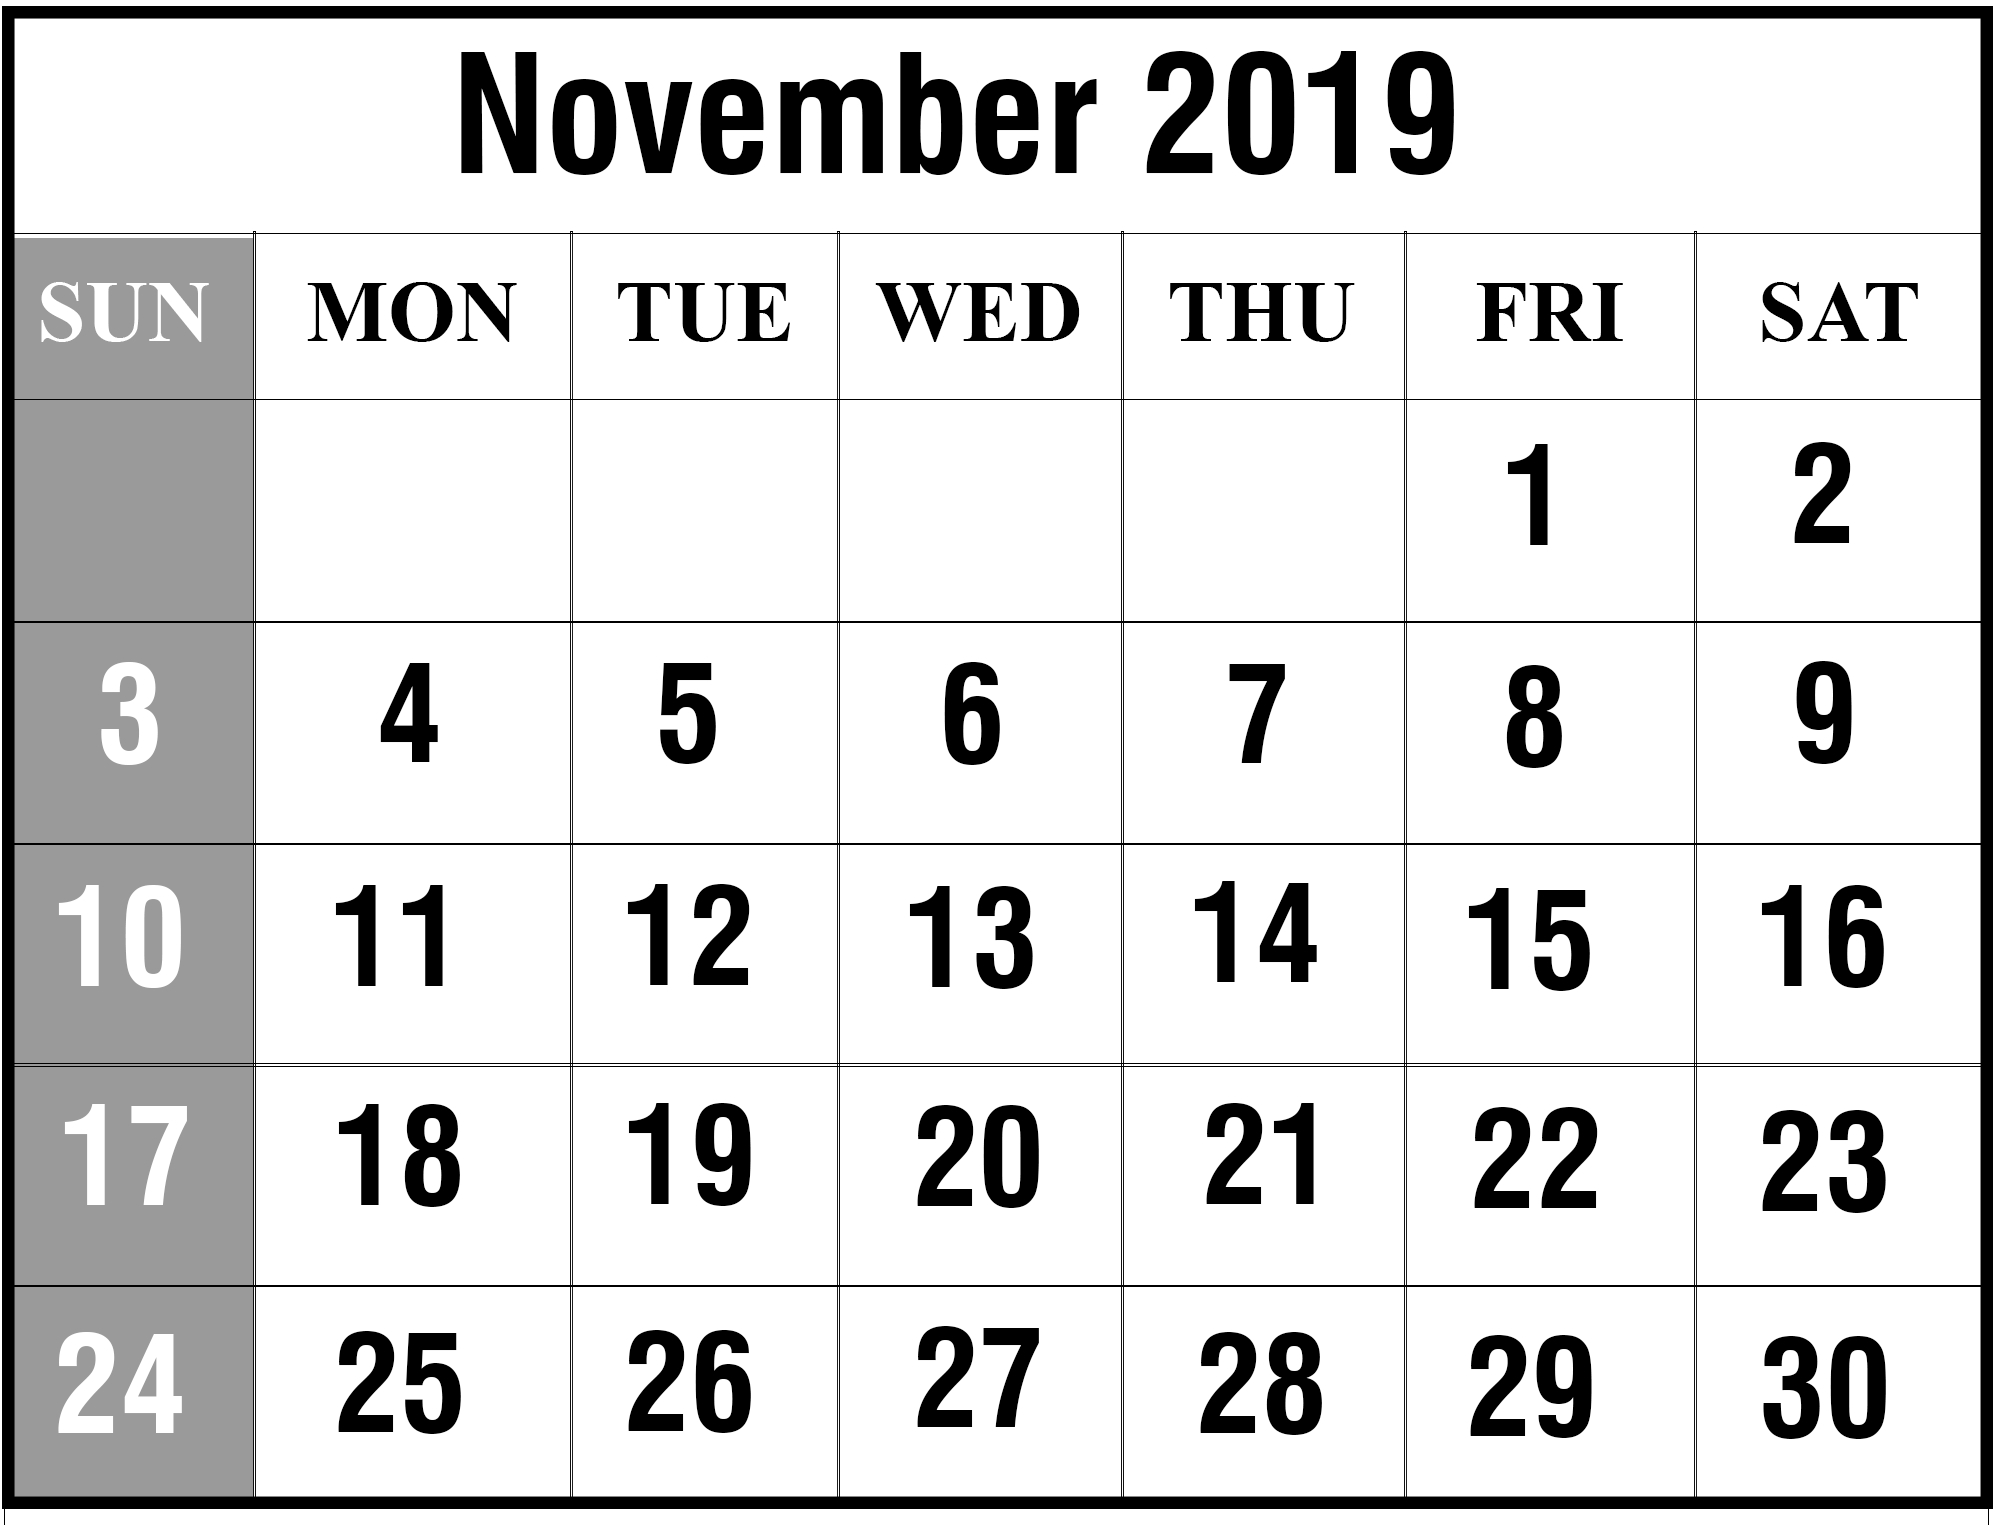 Free Blank November 2019 Printable Calendar In Pdf, Excel-Calendar Template 2020 Printable Free With Prior And Next Month